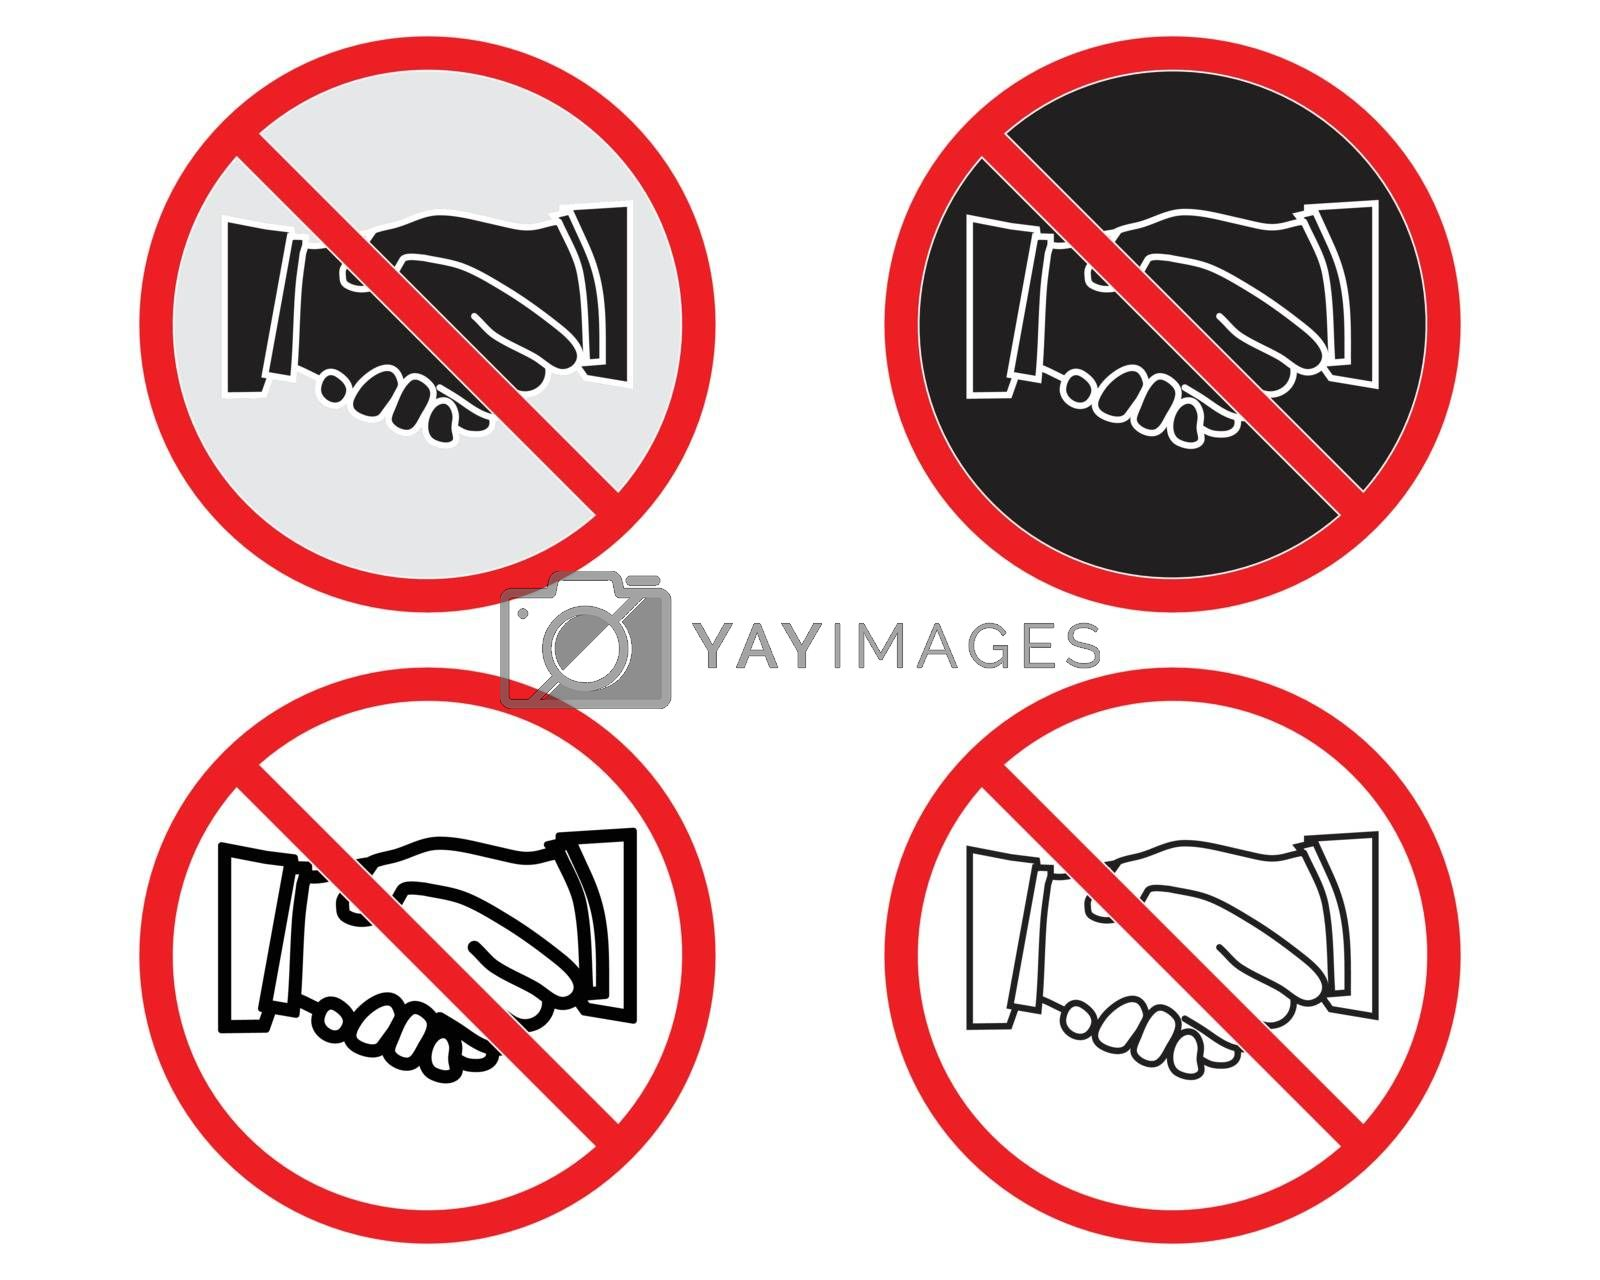 No handshake vector. Not allow handshake sign. The red circle prohibiting sing